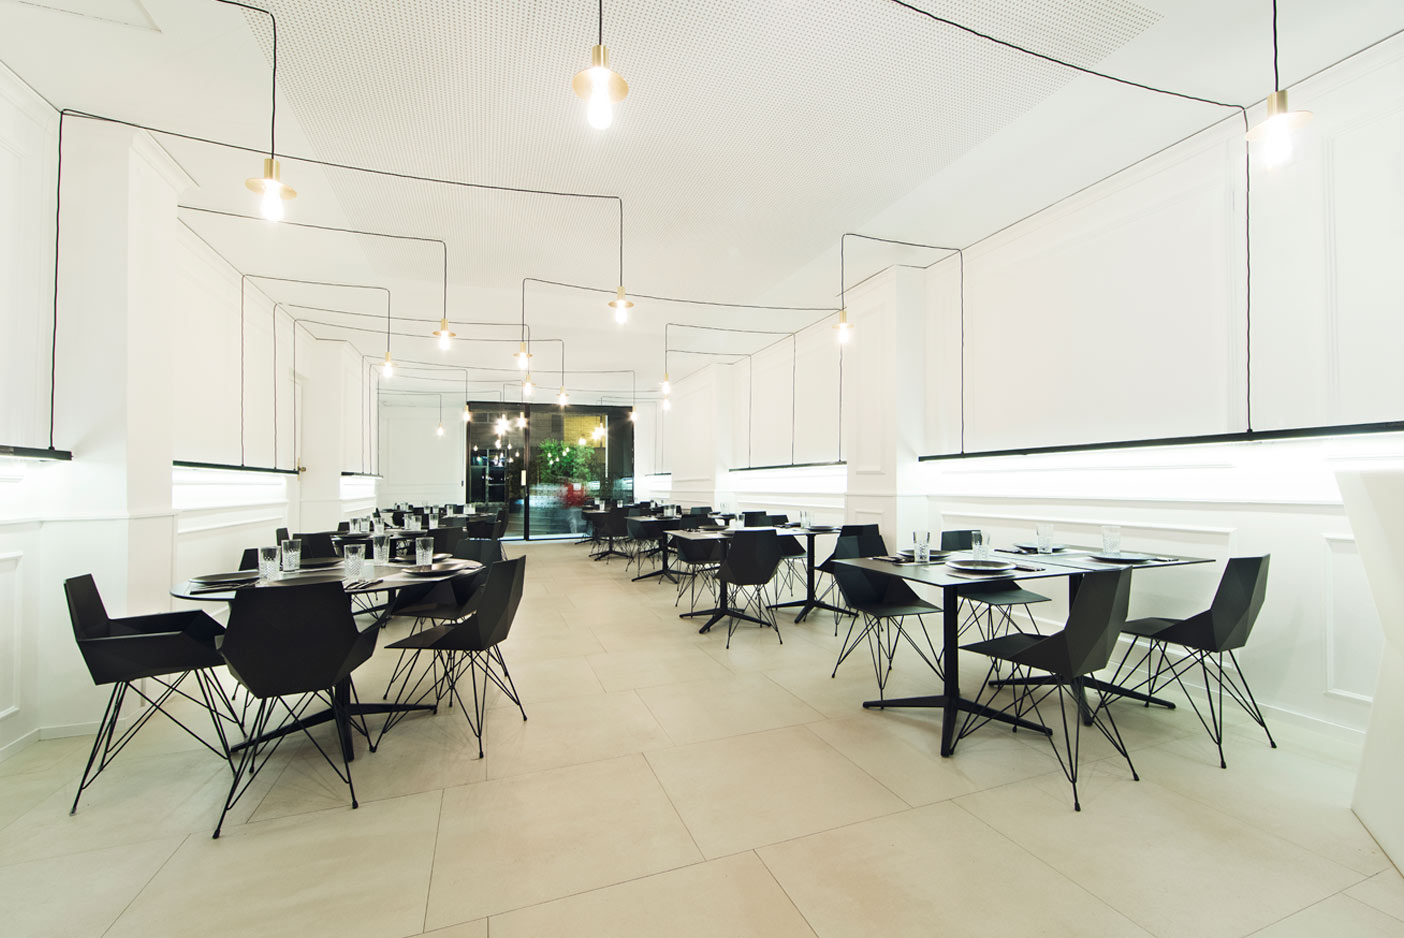 hospitalitydesignfurniture-tables-chairs-faz-blancinegrerestaurante-ramonesteve-vondom